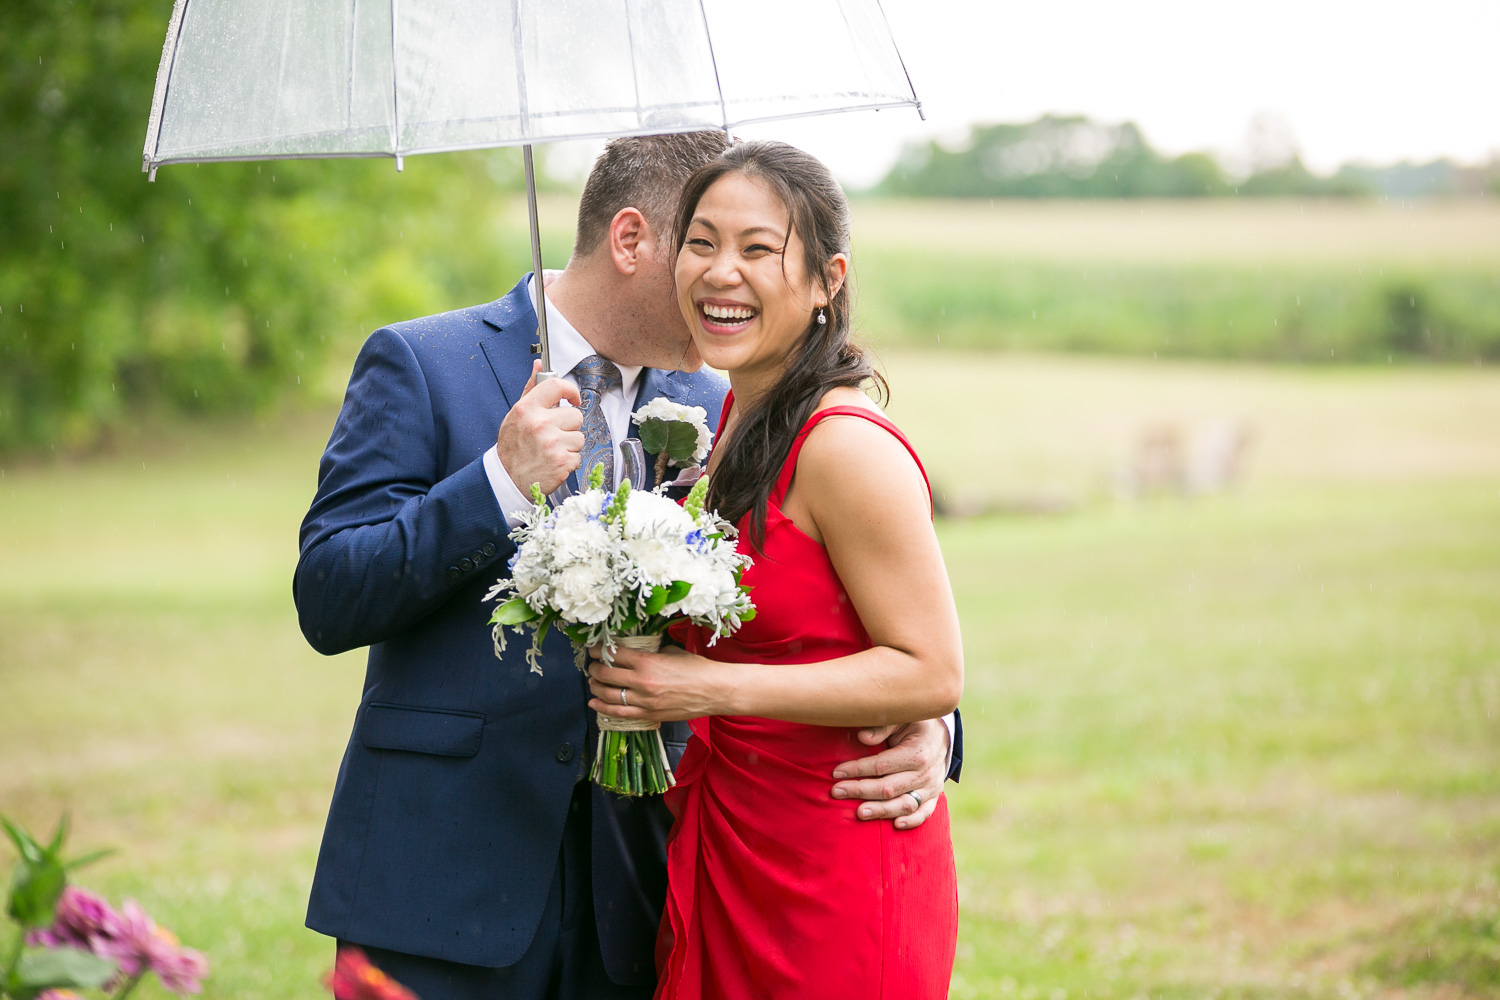 Smiling bride and groom on rainy wedding day